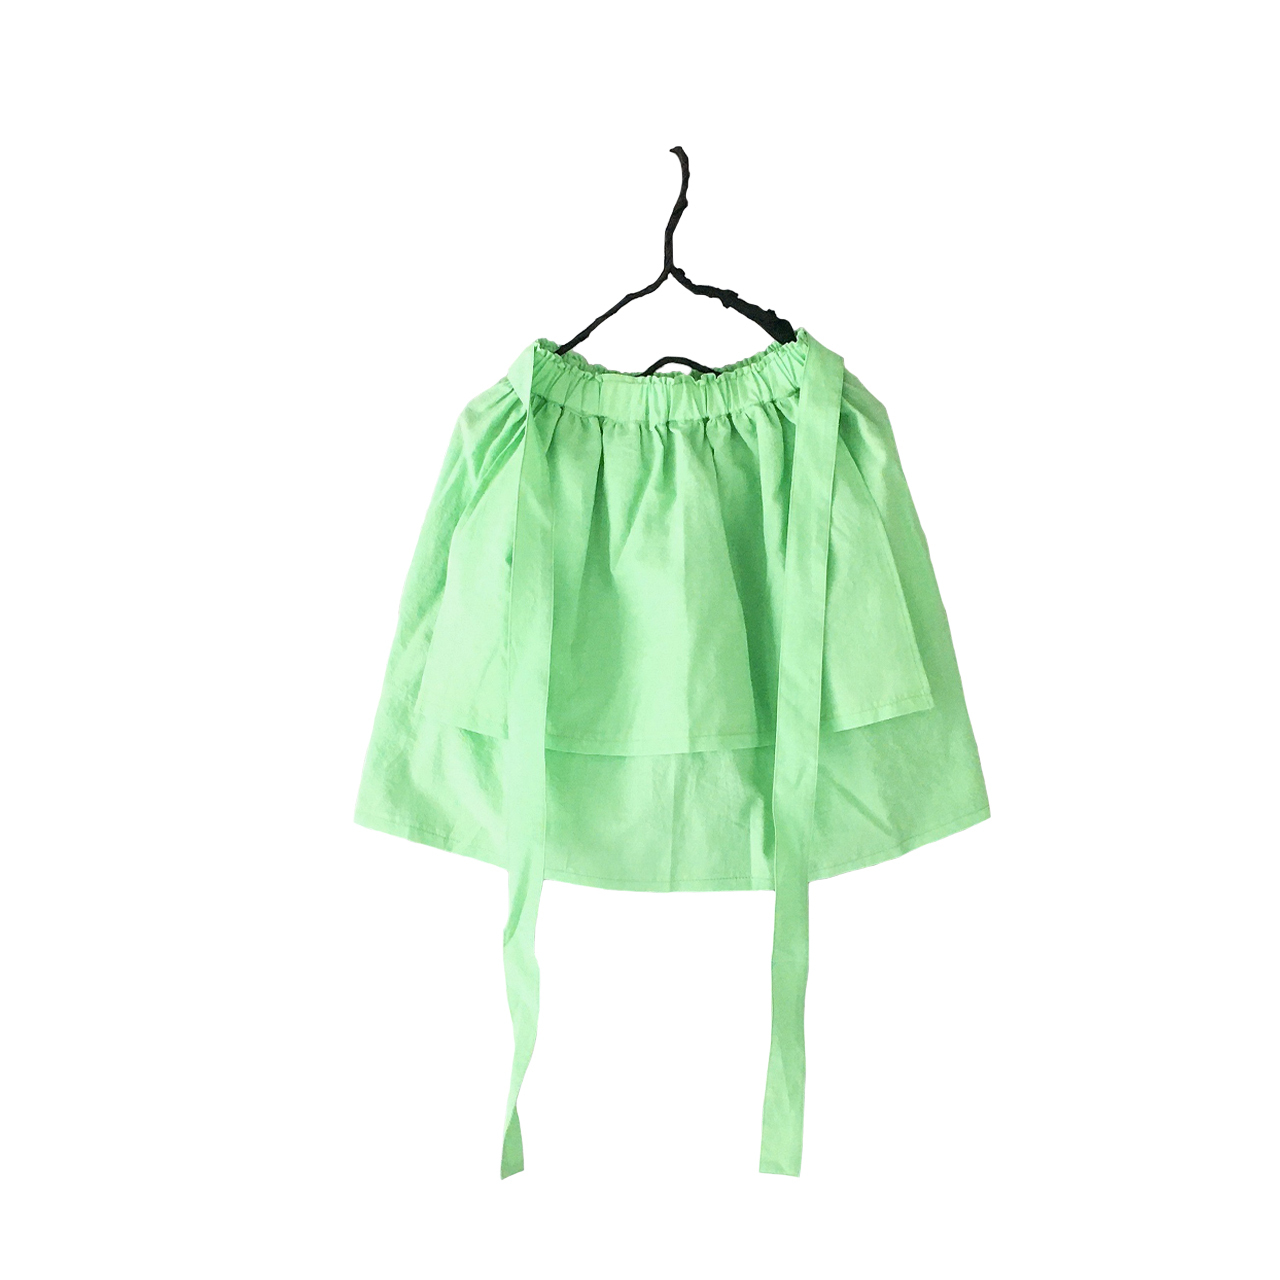 APRON STYLE SKIRT DYED / S - L